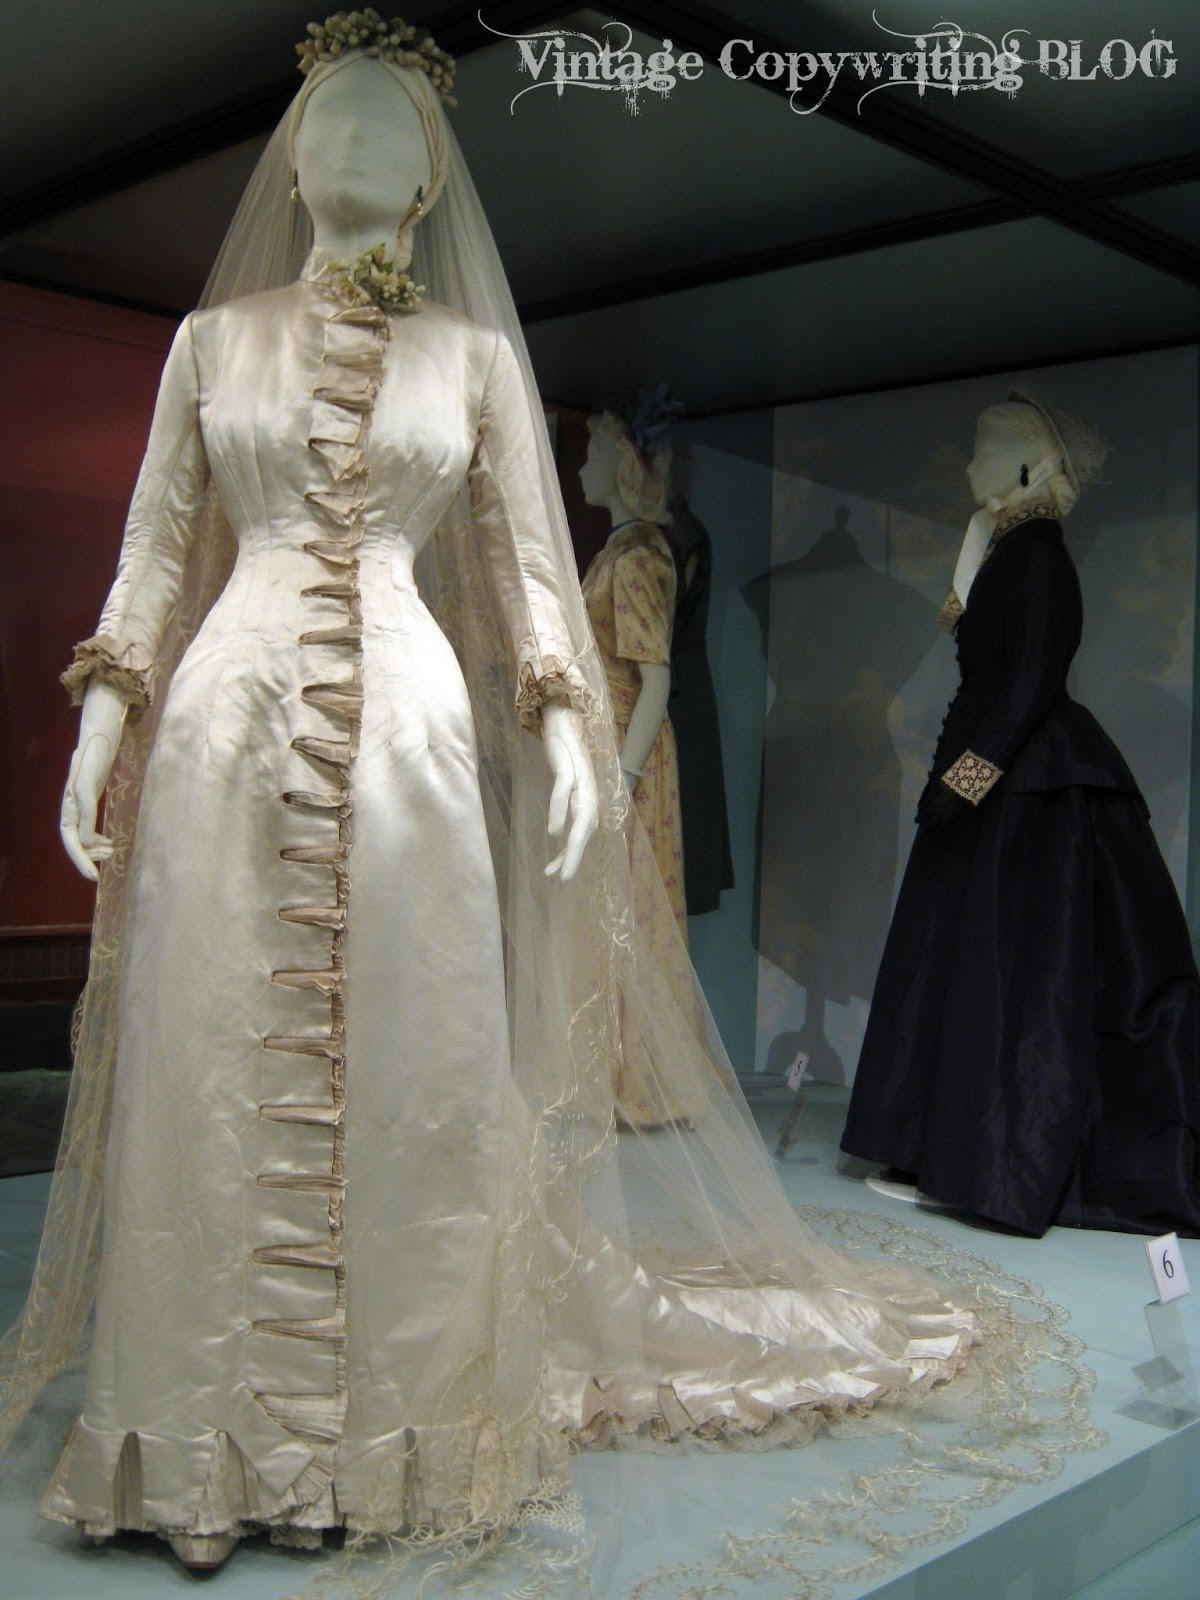 emily kitchins victorian and very victorian wedding dress Vintage Copywriting Blog